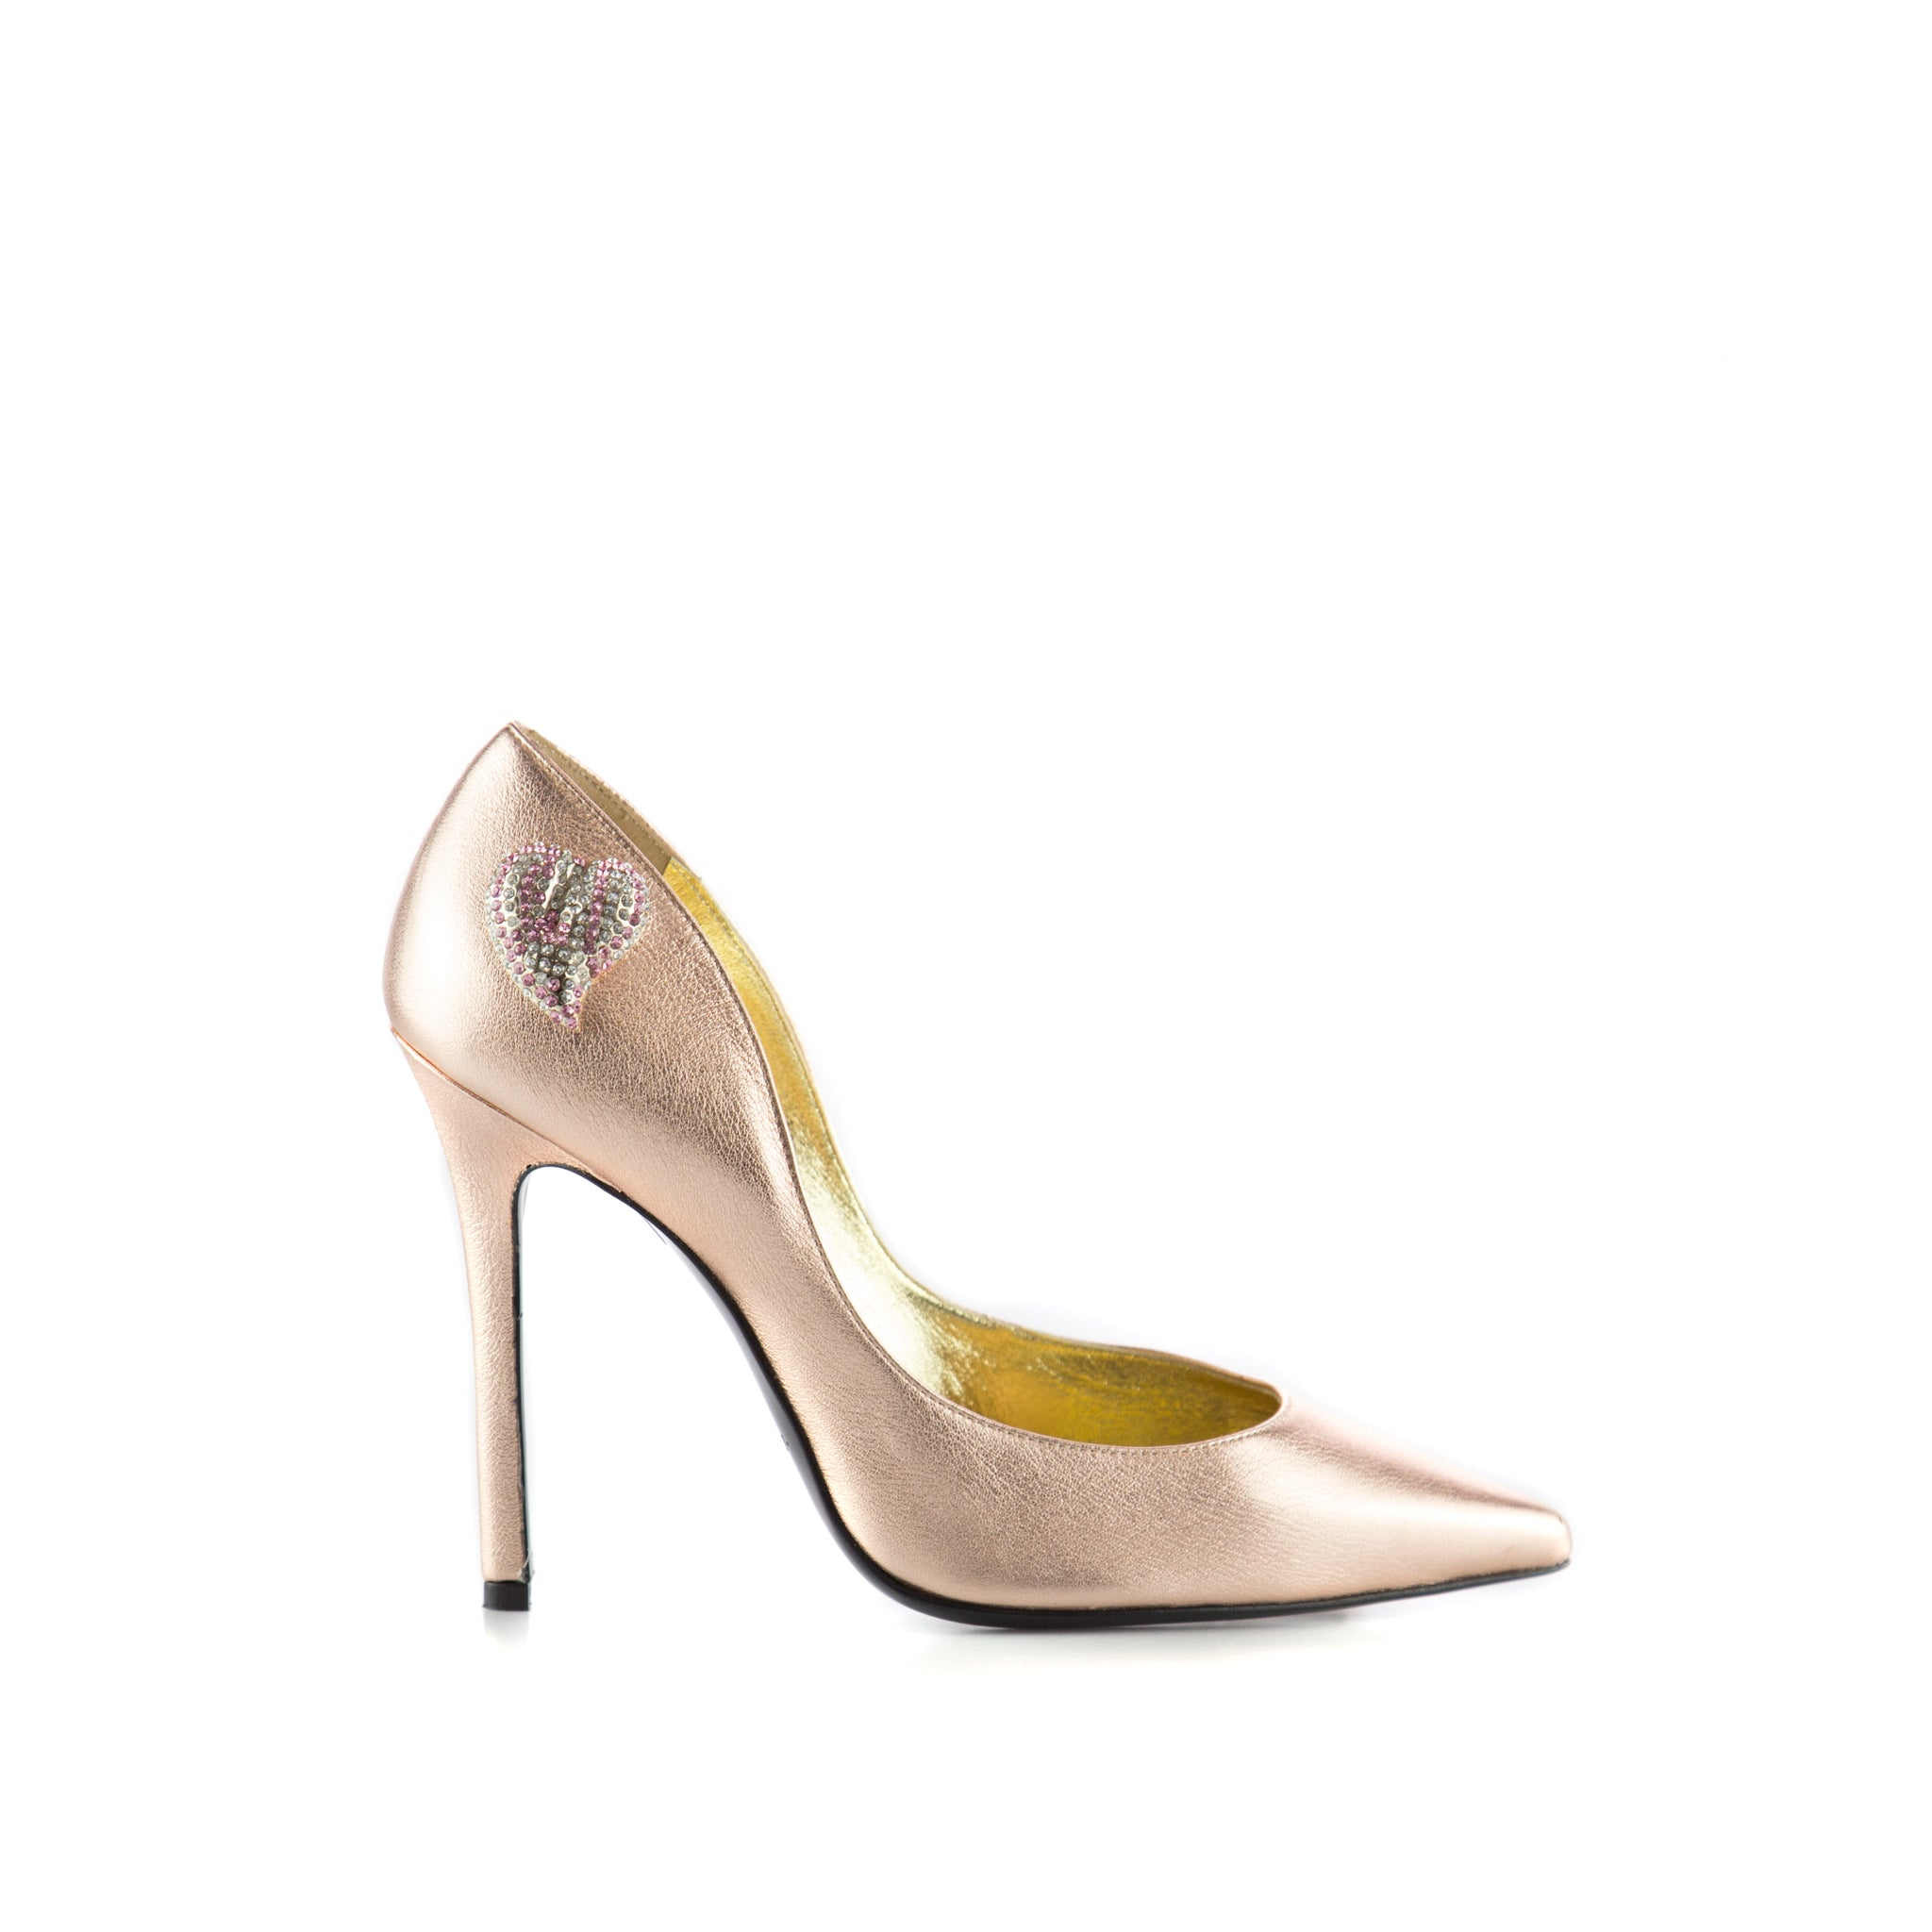 Navida Rose Gold Leather Pumps-APERLAI-SHOPATVOI.COM - Luxury Fashion Designer